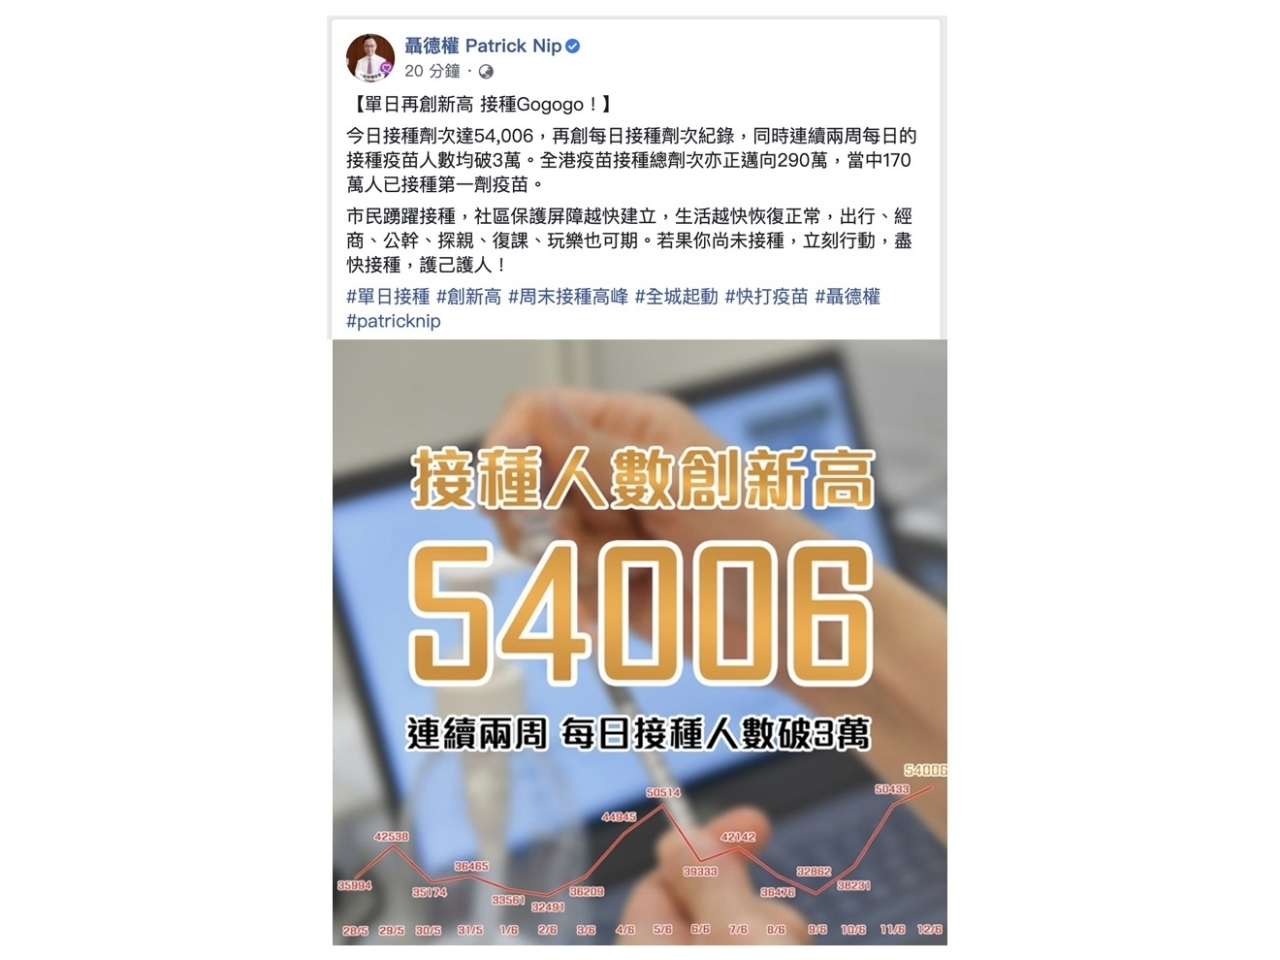 Patrick Nip hailed the progress in a Facebook post. Screen capture: RTHK